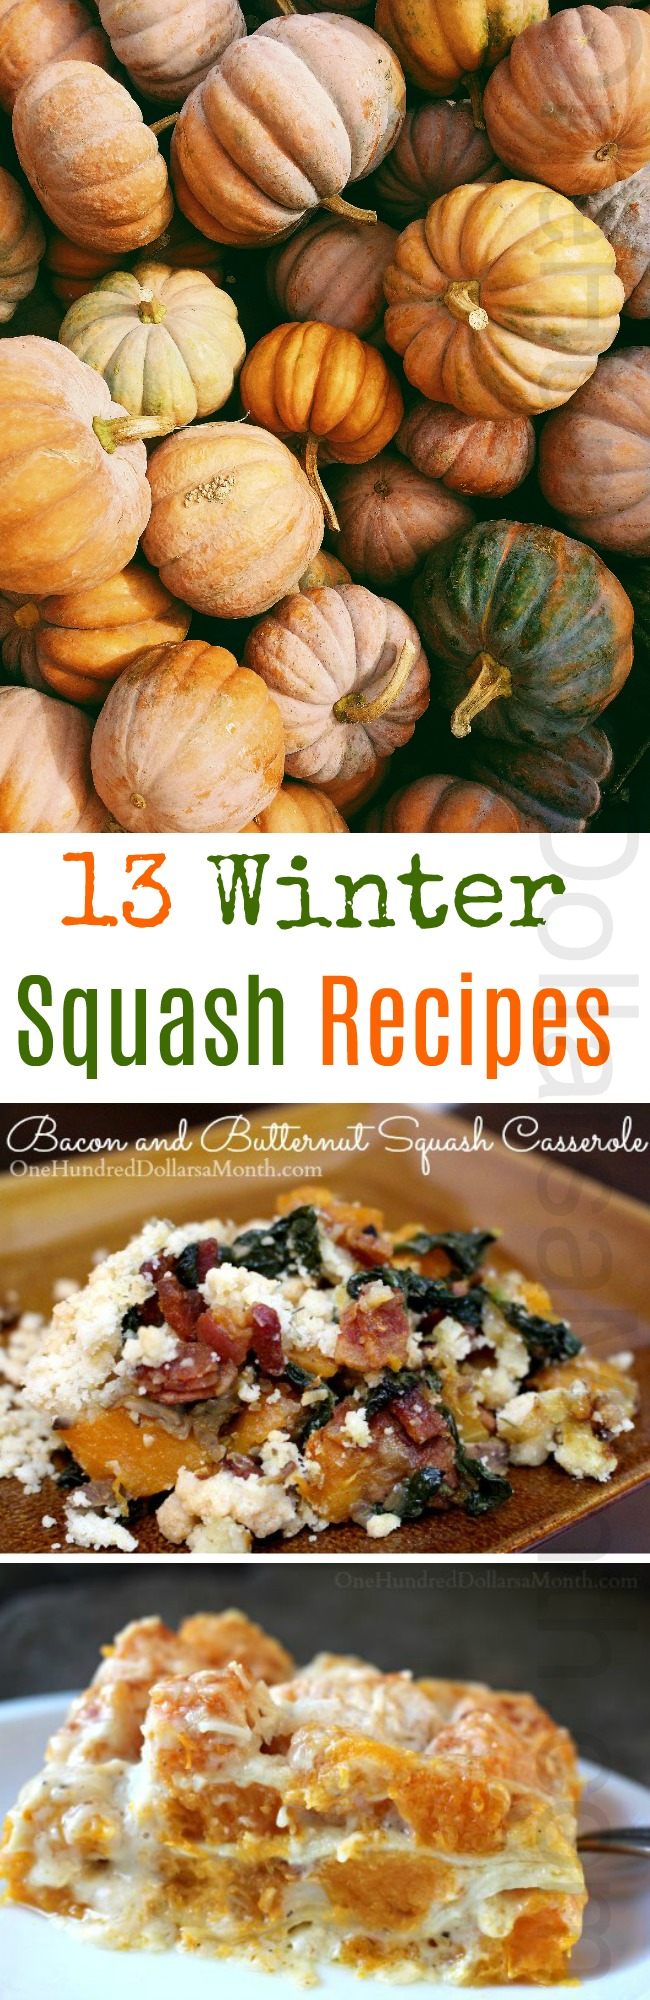 13 Winter Squash Recipes to Serve This Fall